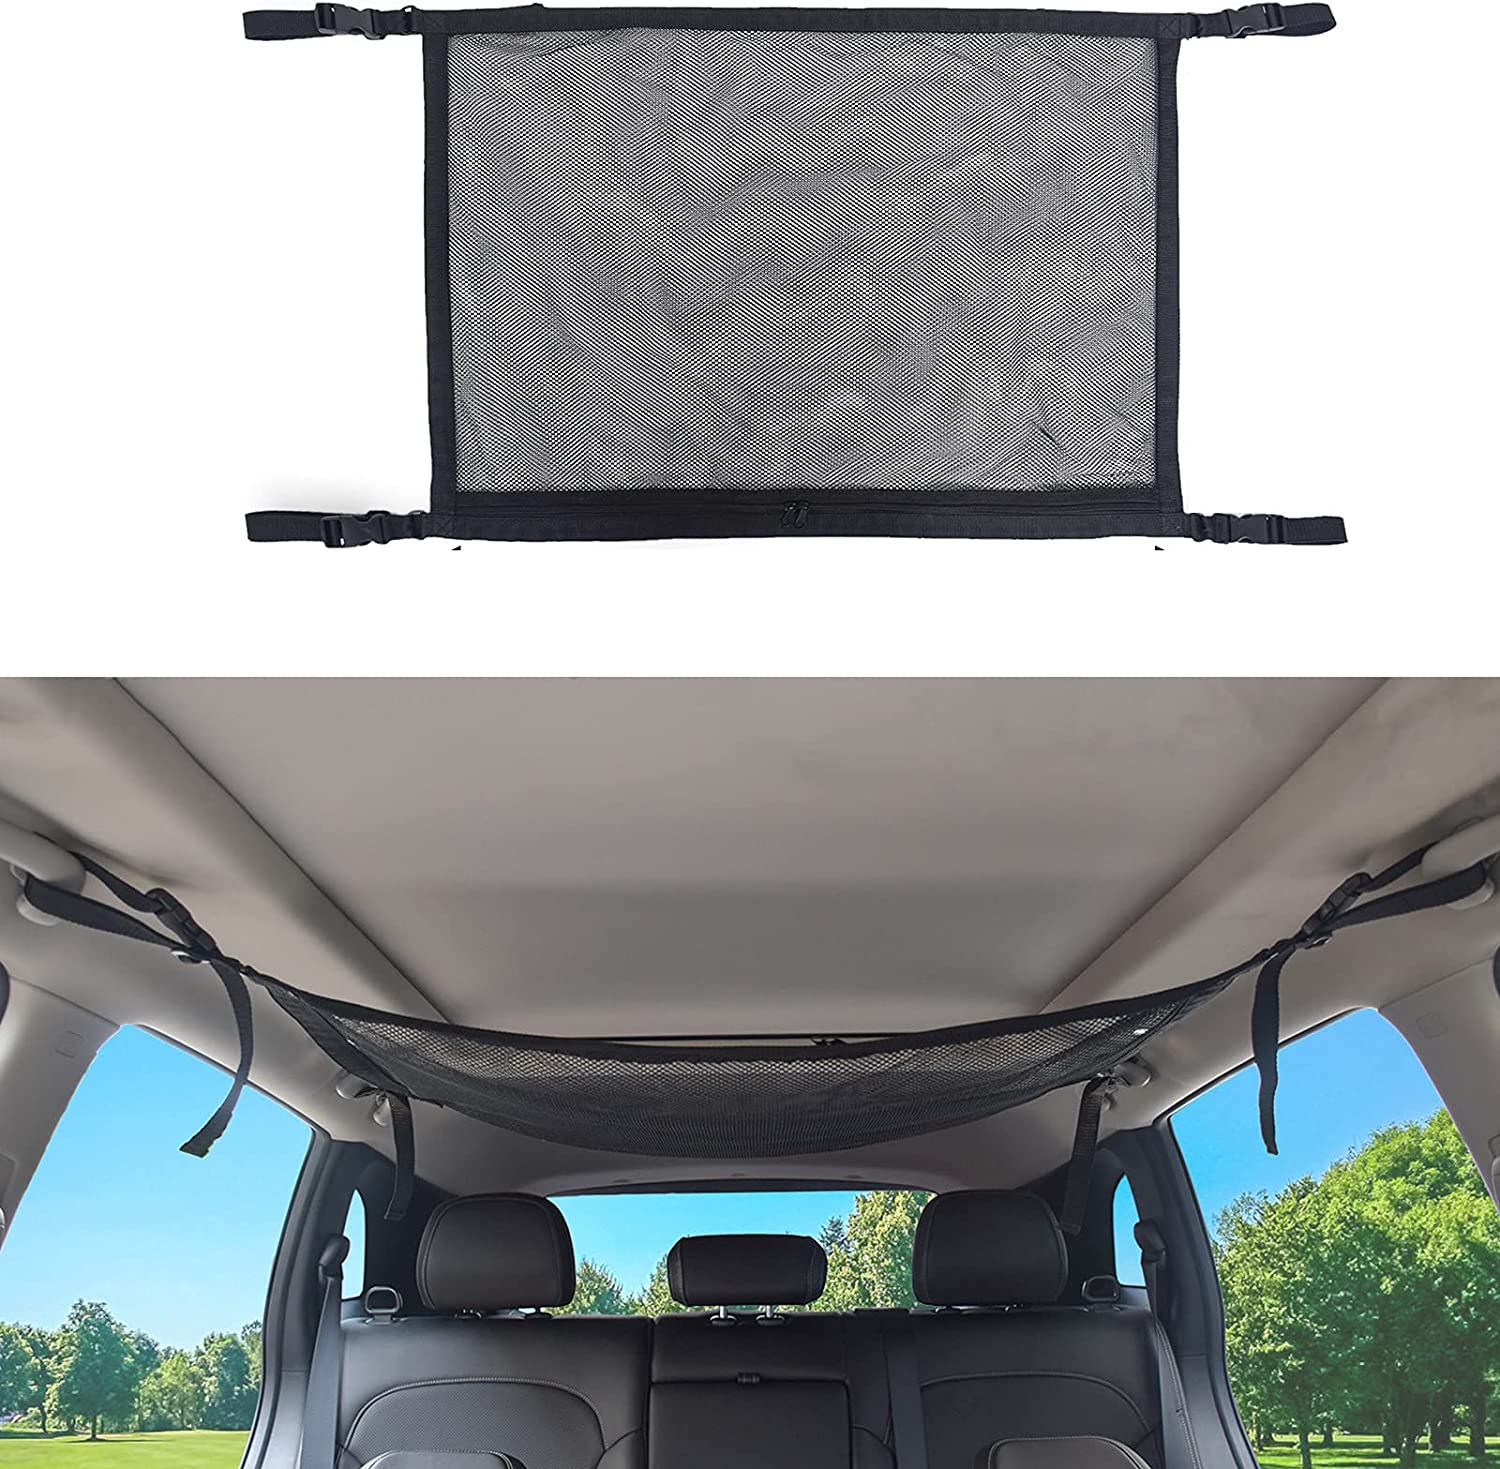 Car Ceiling Cargo Net Pocket A Storage Ranking integrated 1st place Charlotte Mall Interior